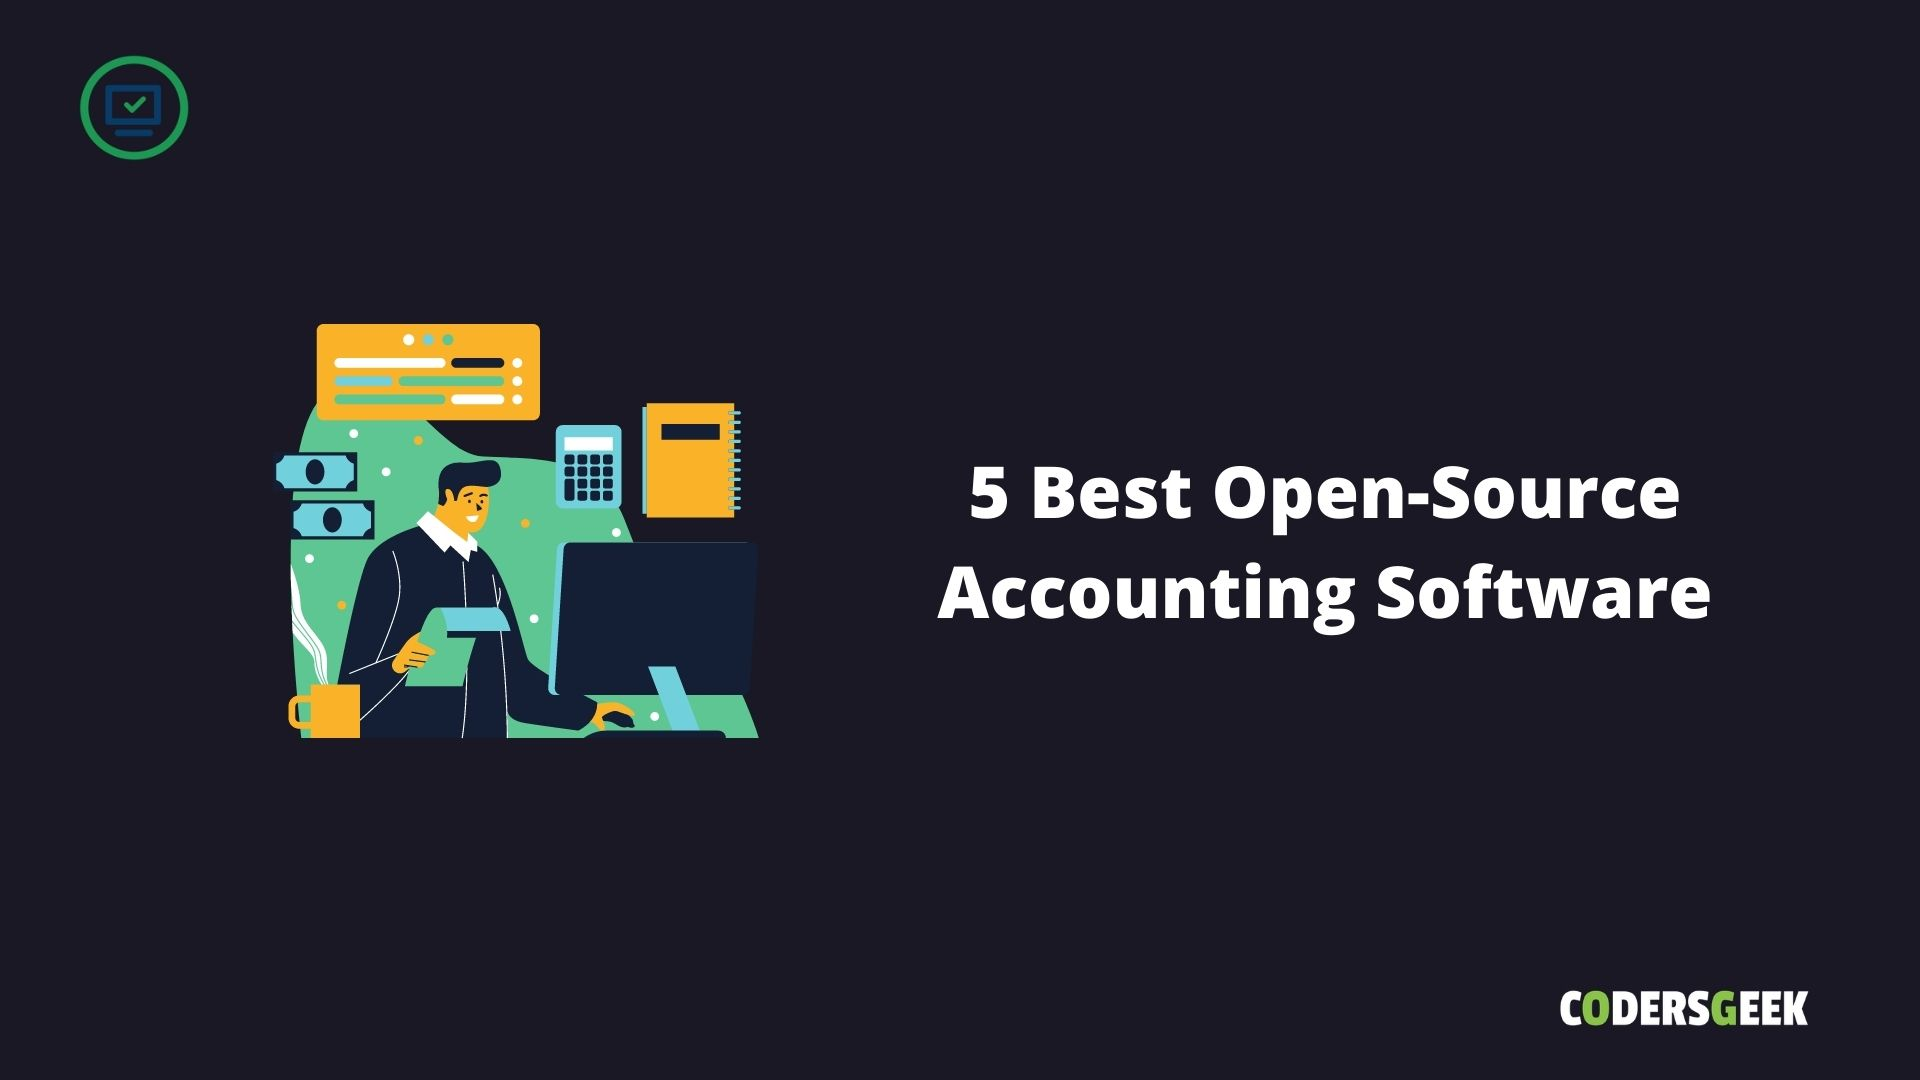 5 Best Open-Source Accounting Software